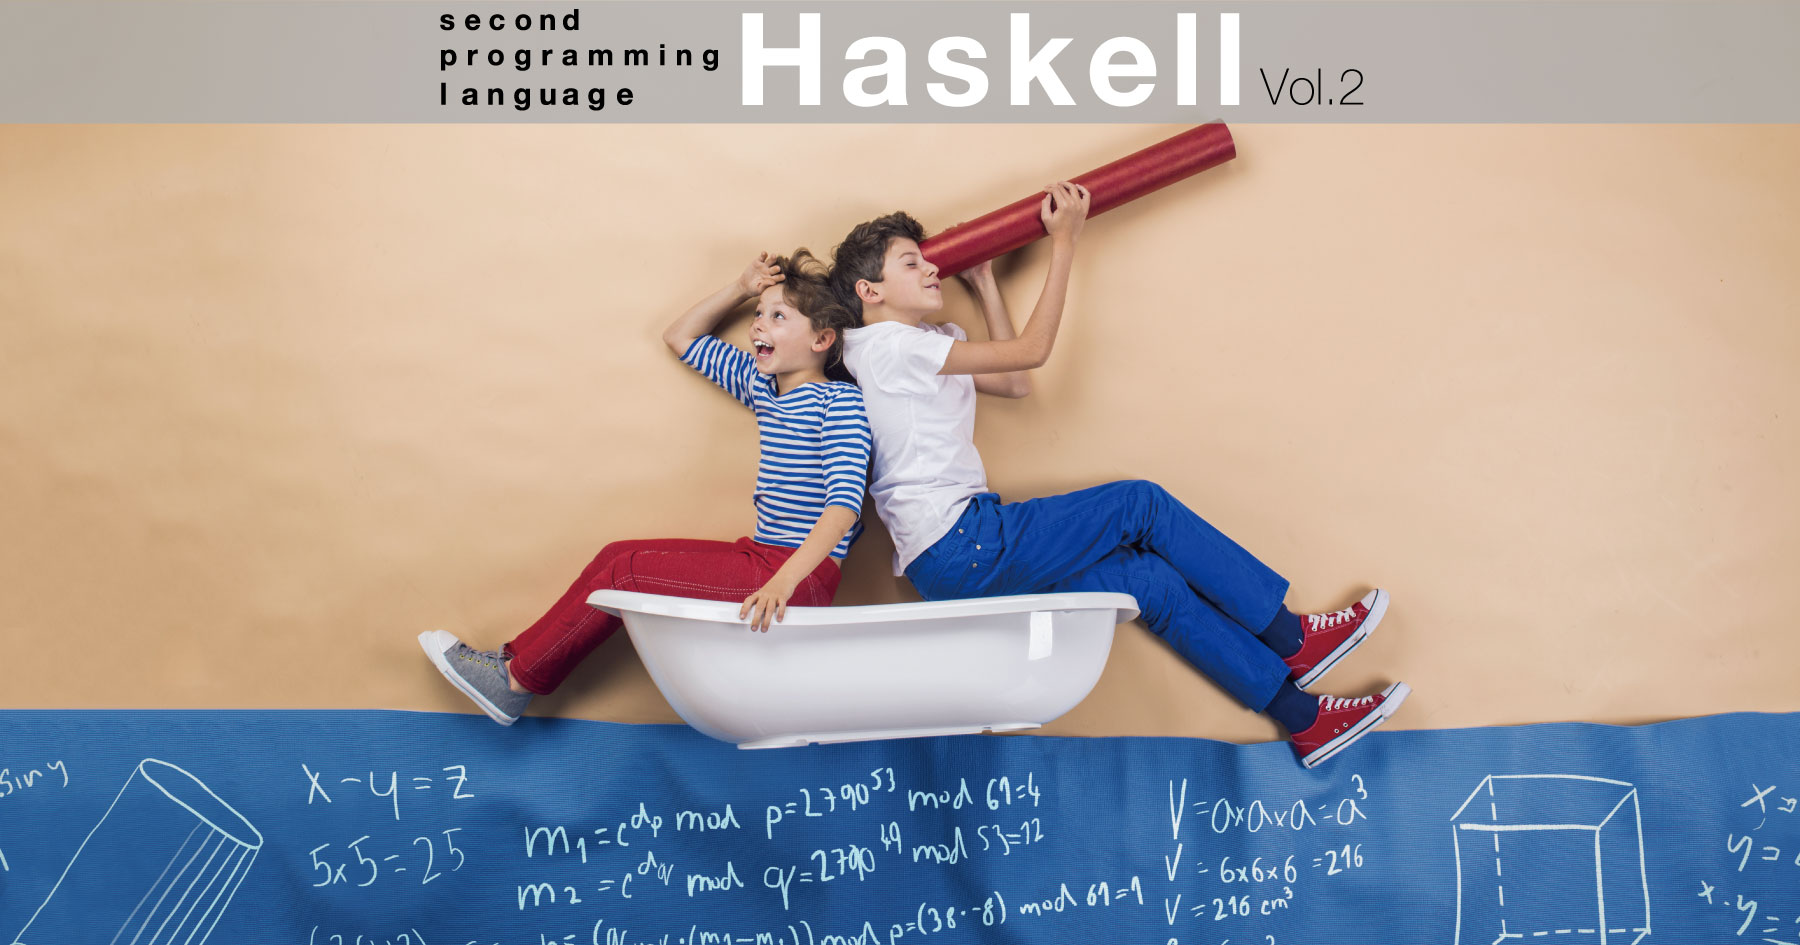 second programming language Haskell vol. 2